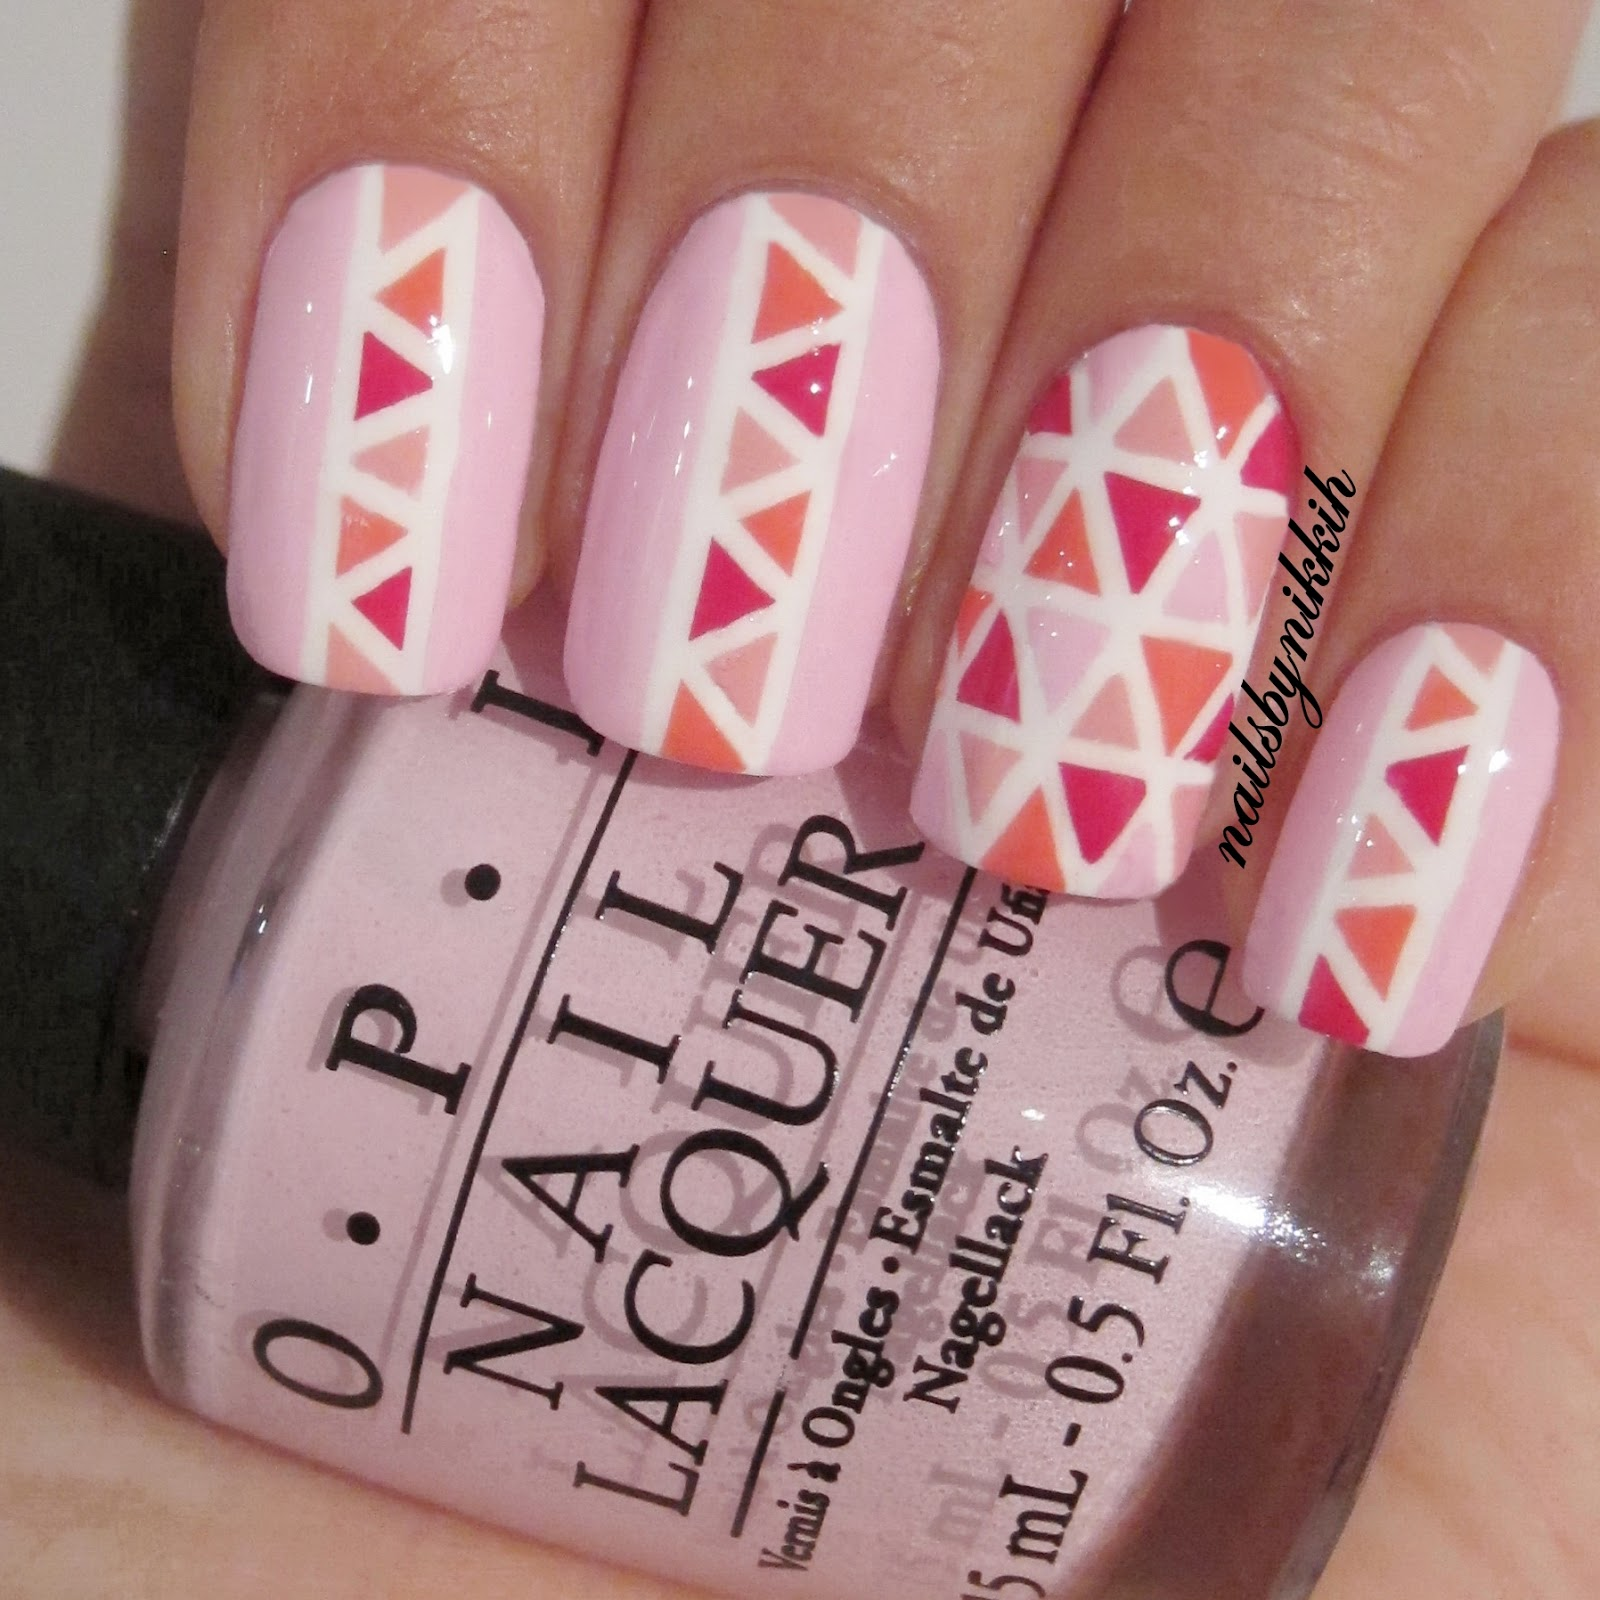 Nail Art Using Striping Tape: The Nail Art Trend: [Tutorial] The Trend: Striping Tape